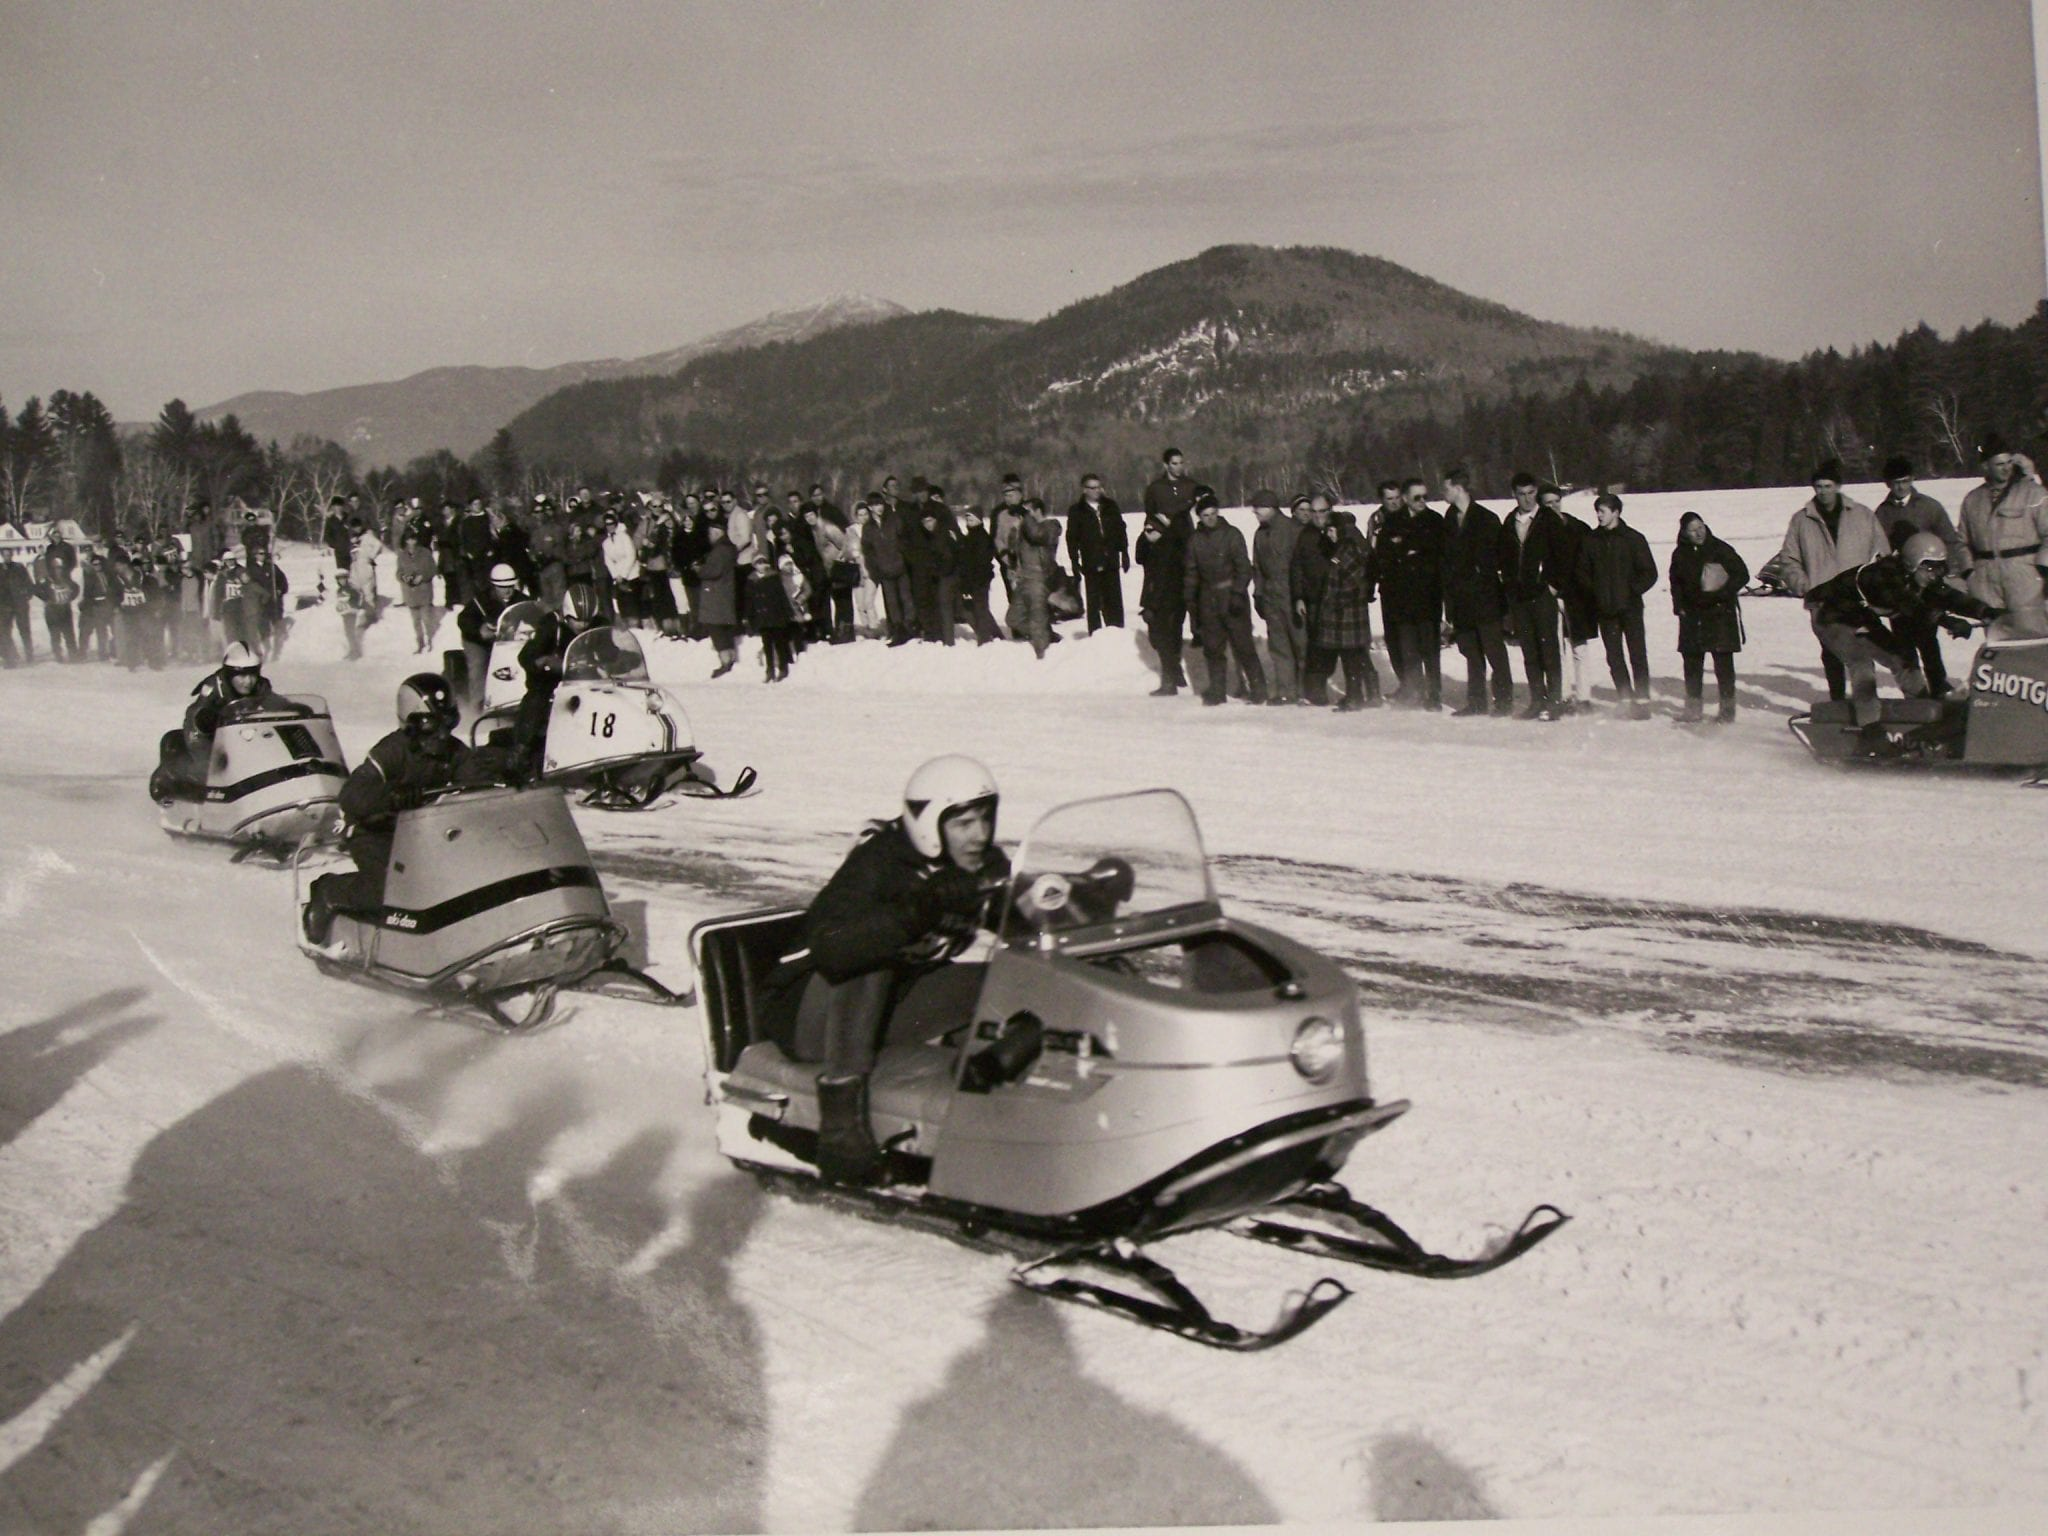 Snowmobile Racing in the Adirondacks - - The Adirondack Almanack